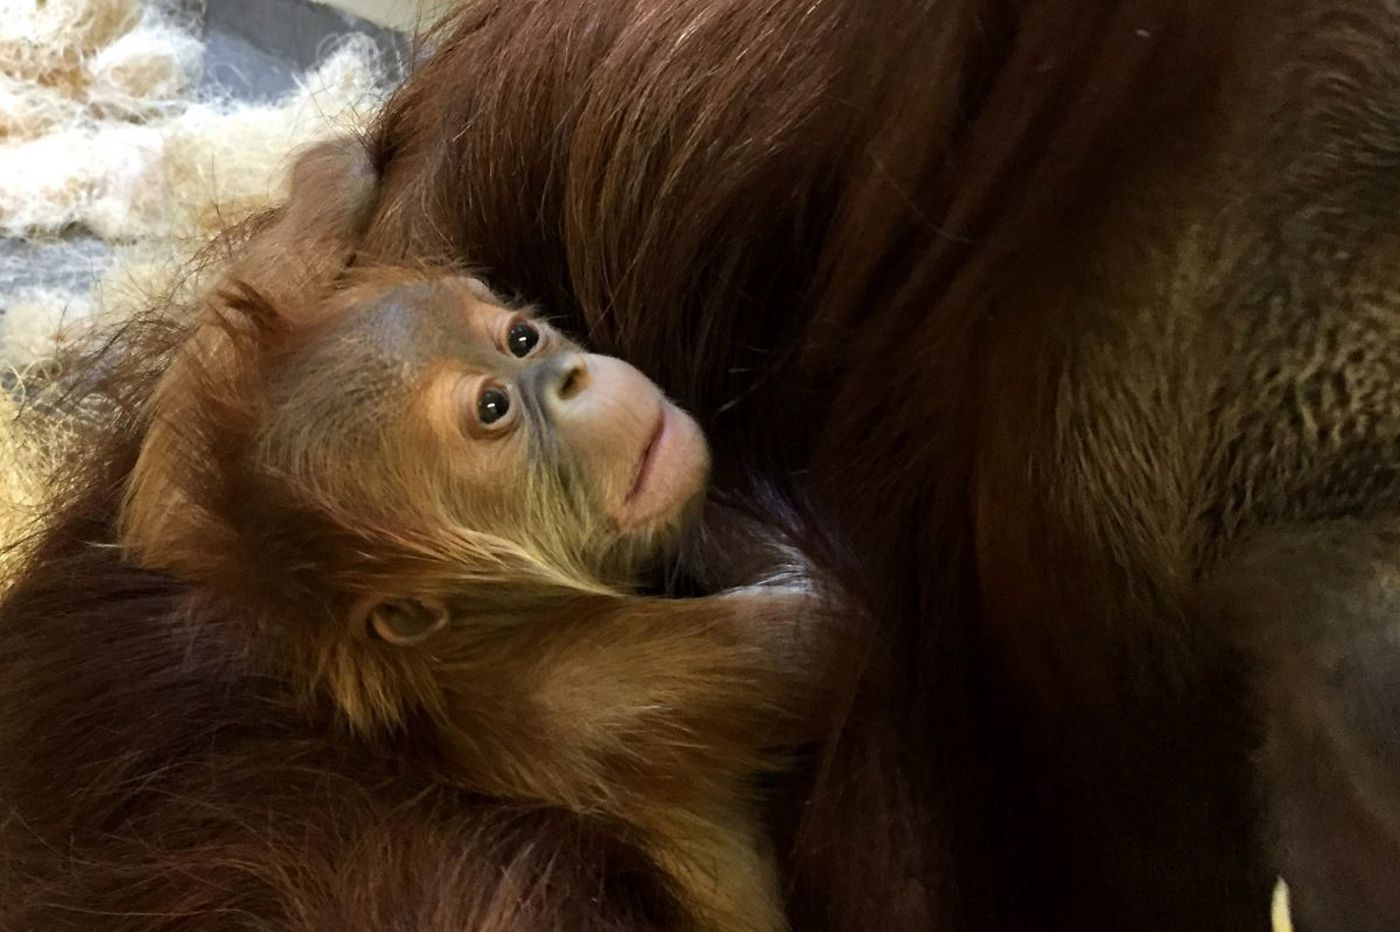 At parks and zoos, our picks of the litters